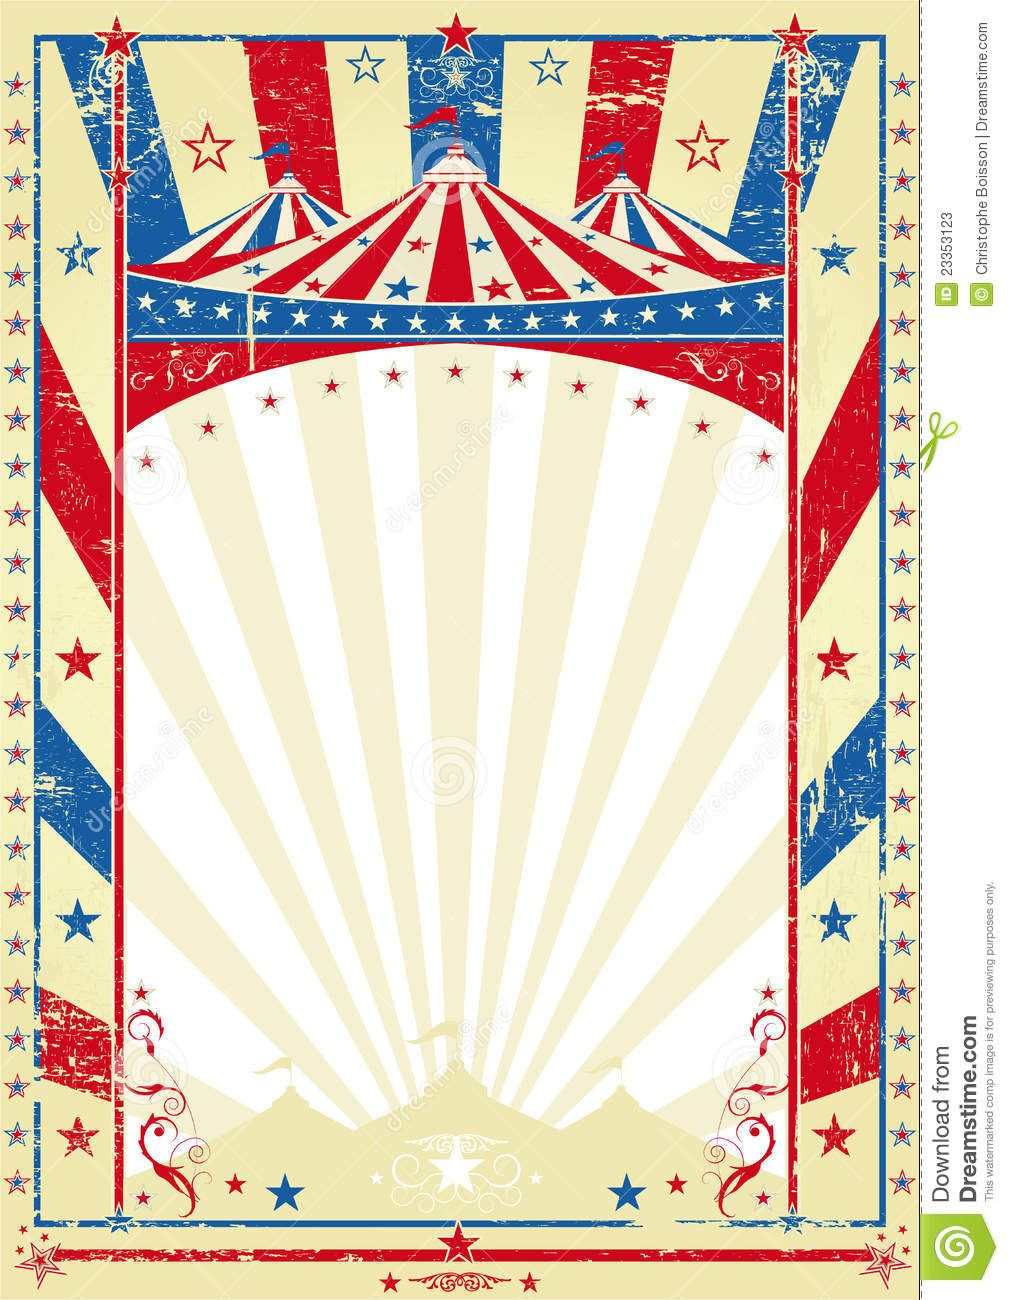 hight resolution of image result for free carnival clipart images